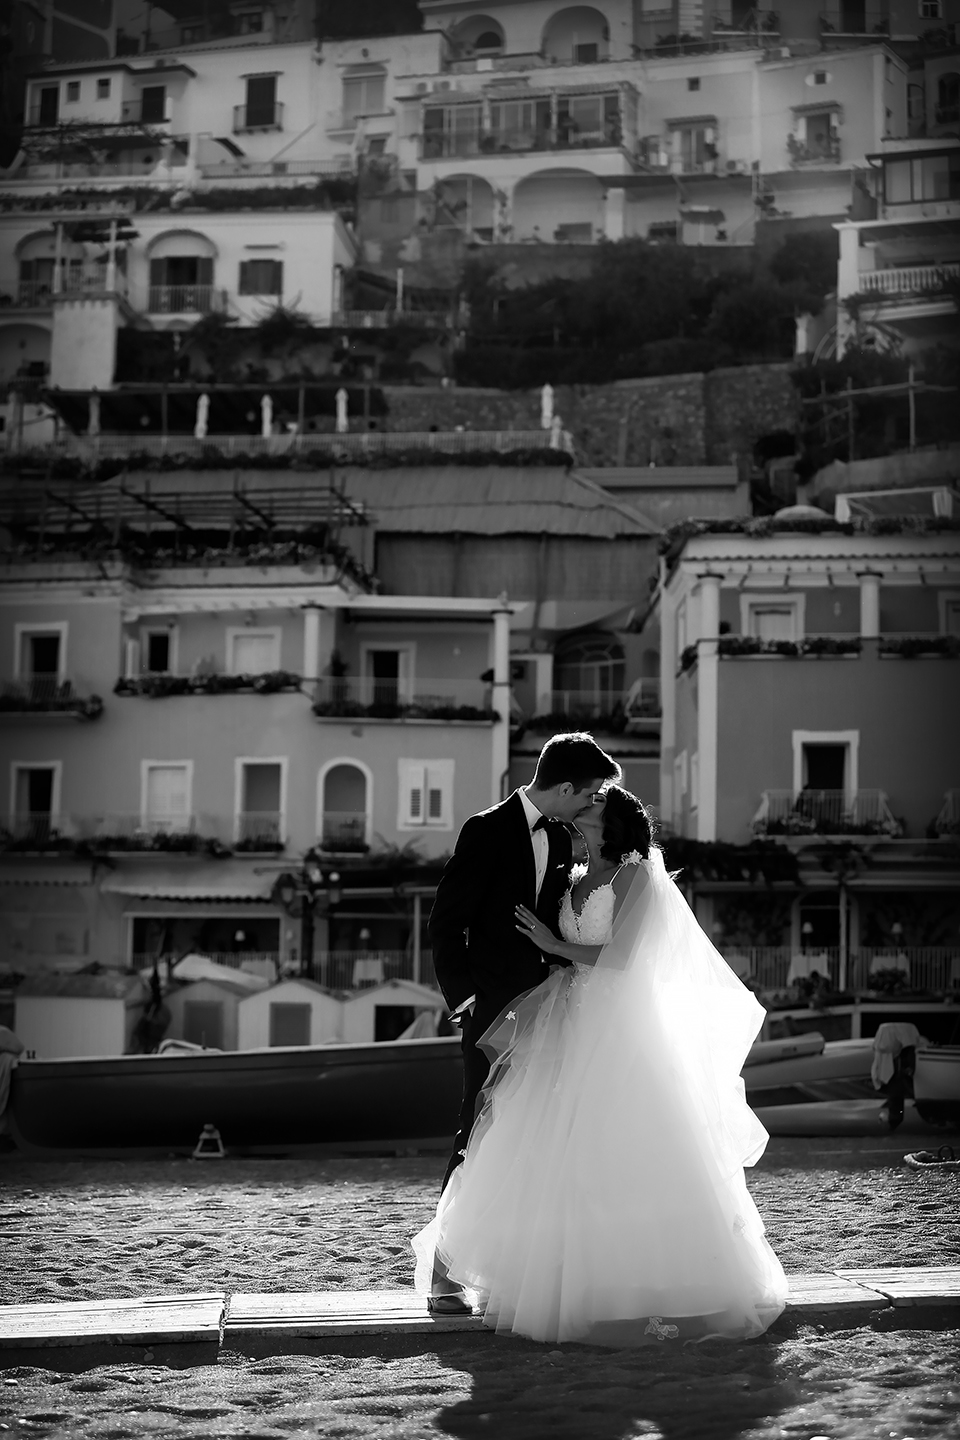 positano-weddin-photographers-italy-wedding-photographers-destination-wedding-photographers-estilo-best-wedding-photographers-in-the-world-casper-bosman-wedding-gown-wedding-style-stylish-modern-wedding-photography-038.jpg